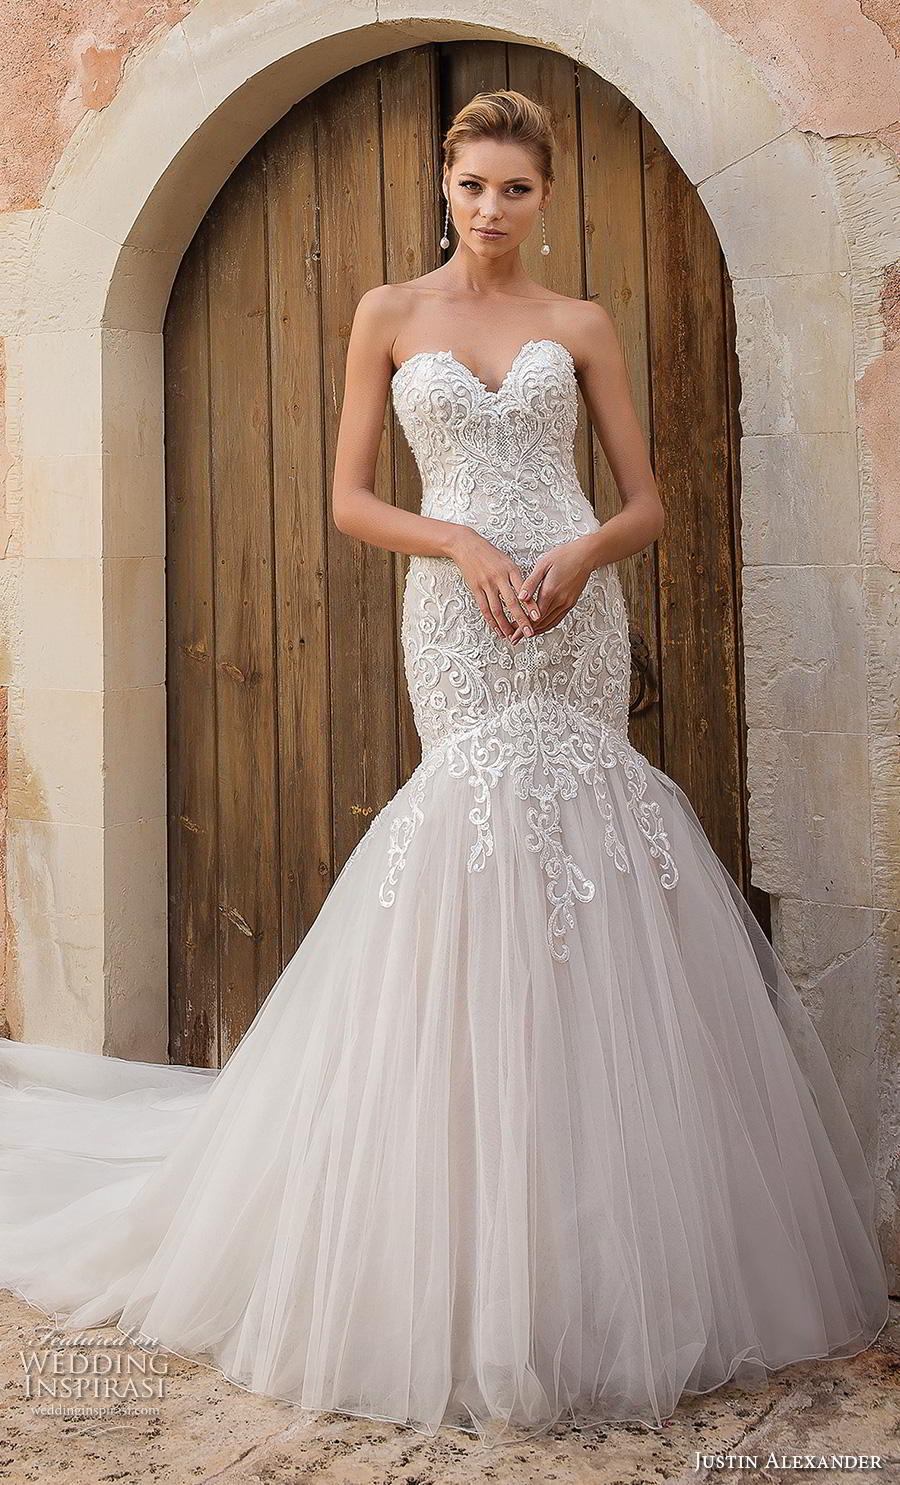 justin alexander spring 2019 bridal strapless sweetheart neckline full embellishment elegant romantic mermaid wedding dress backless chapel train (8) mv